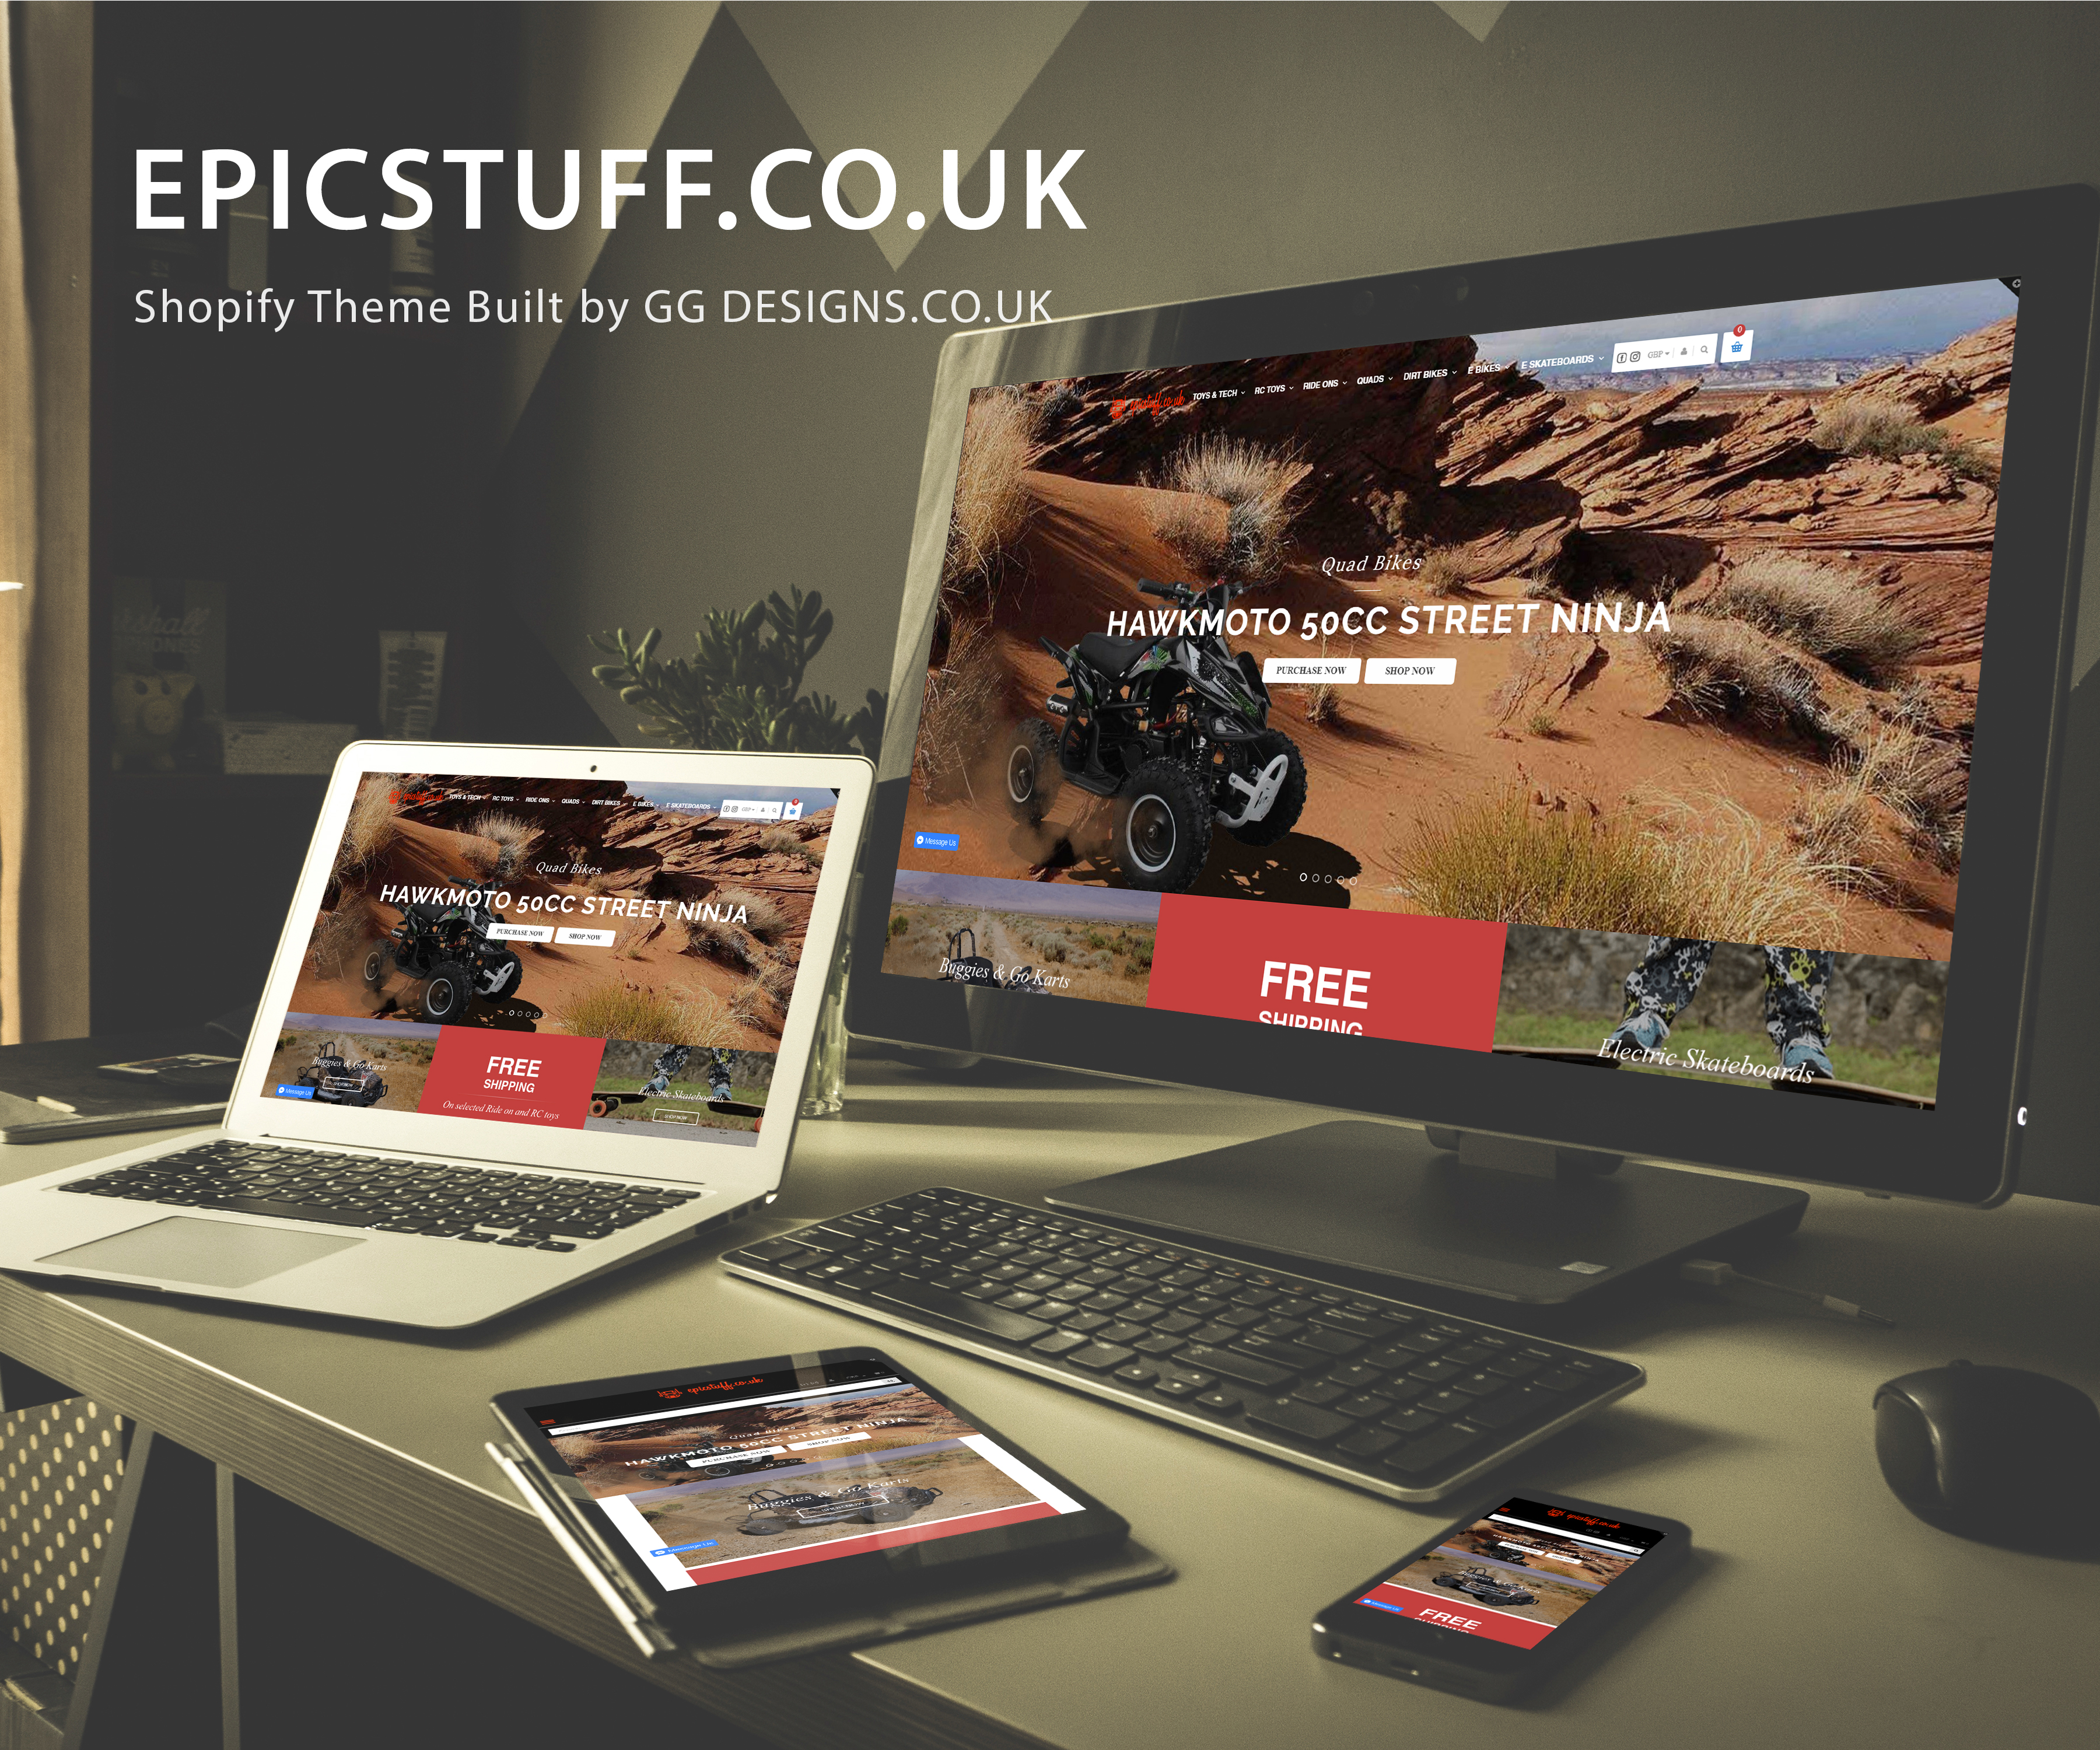 EpicStuff.co.uk Shopify Website Design